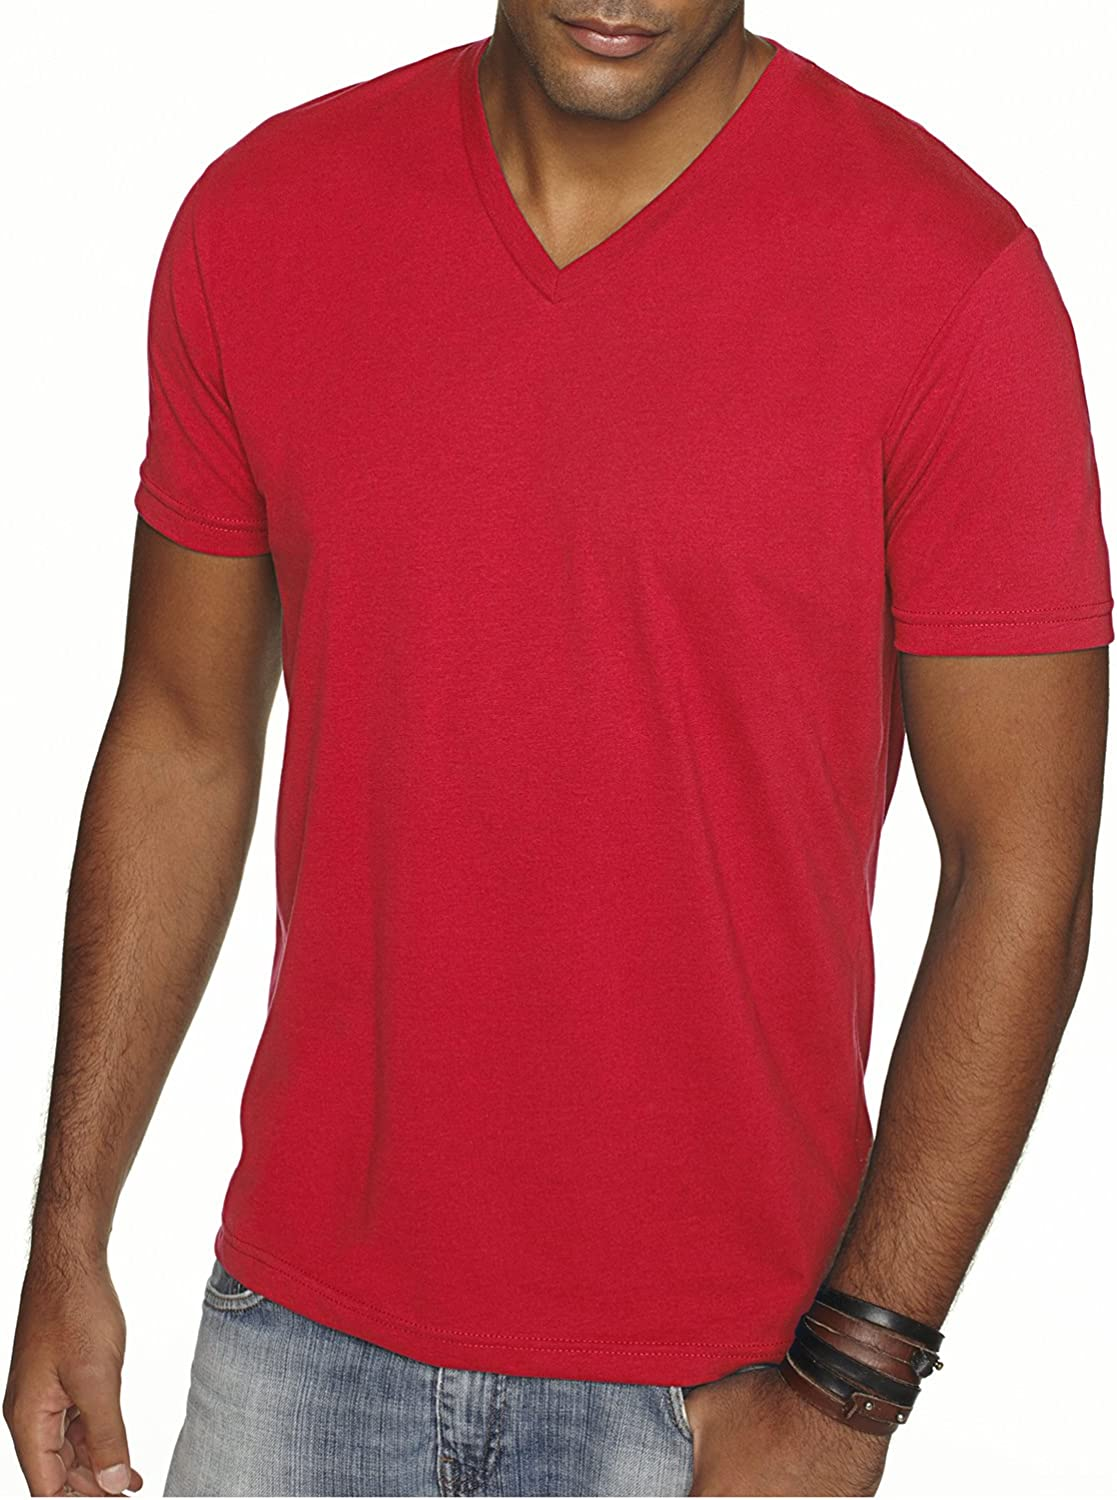 Next Level Men's Sueded Baby Rib Soft V-Neck T-Shirt, Red, Large